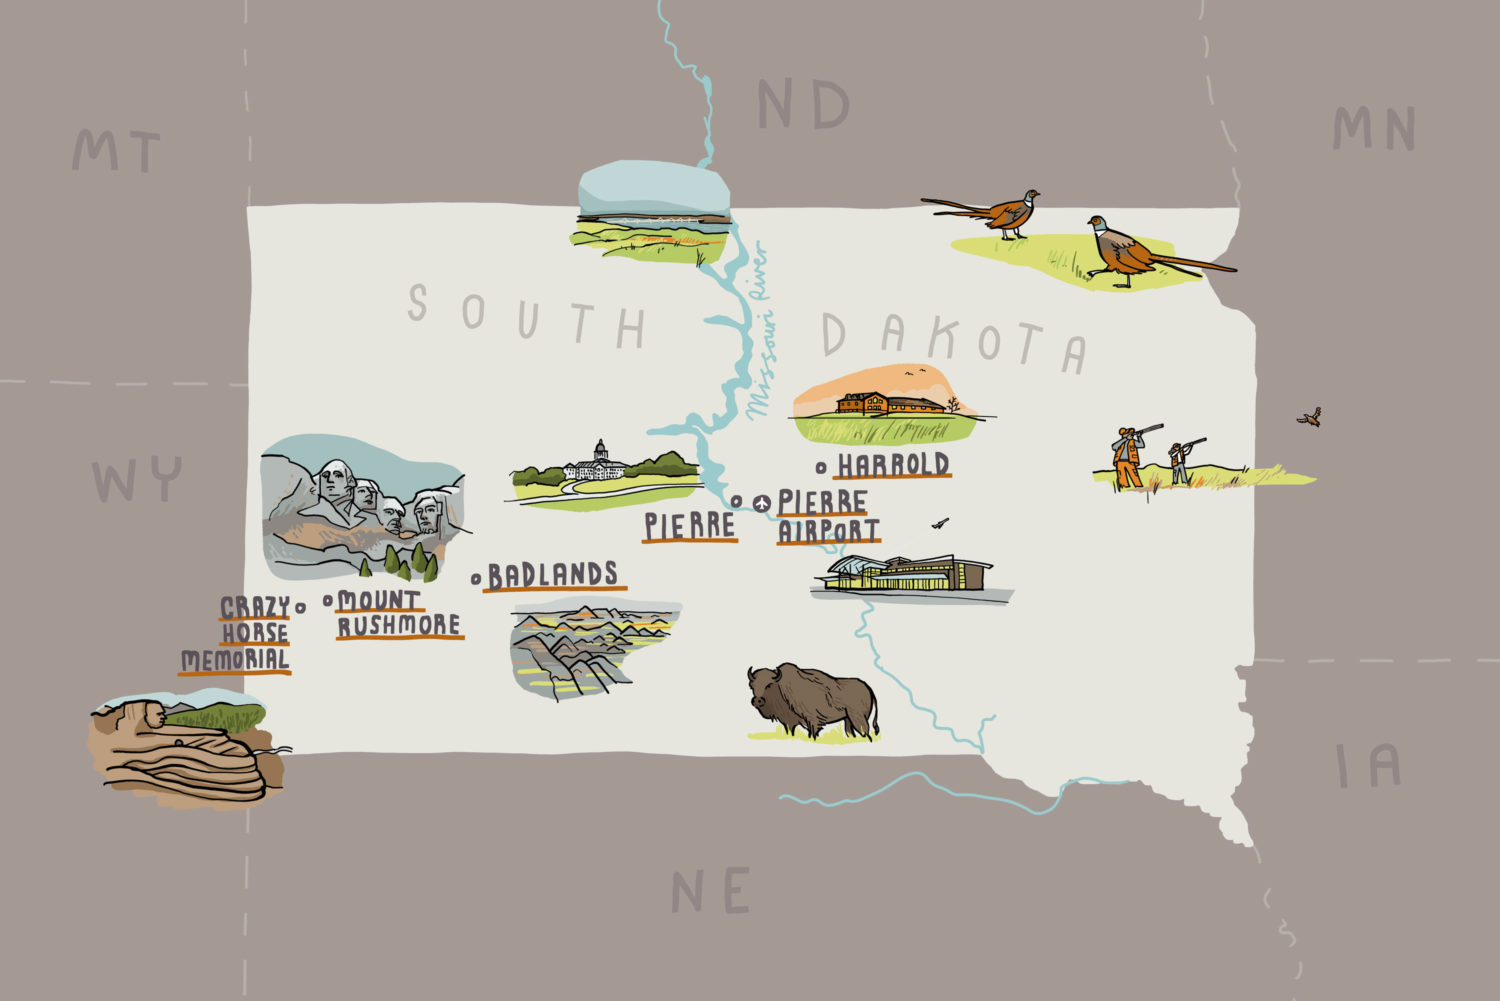 Illustrated map of South Dakota for AOPA magazine